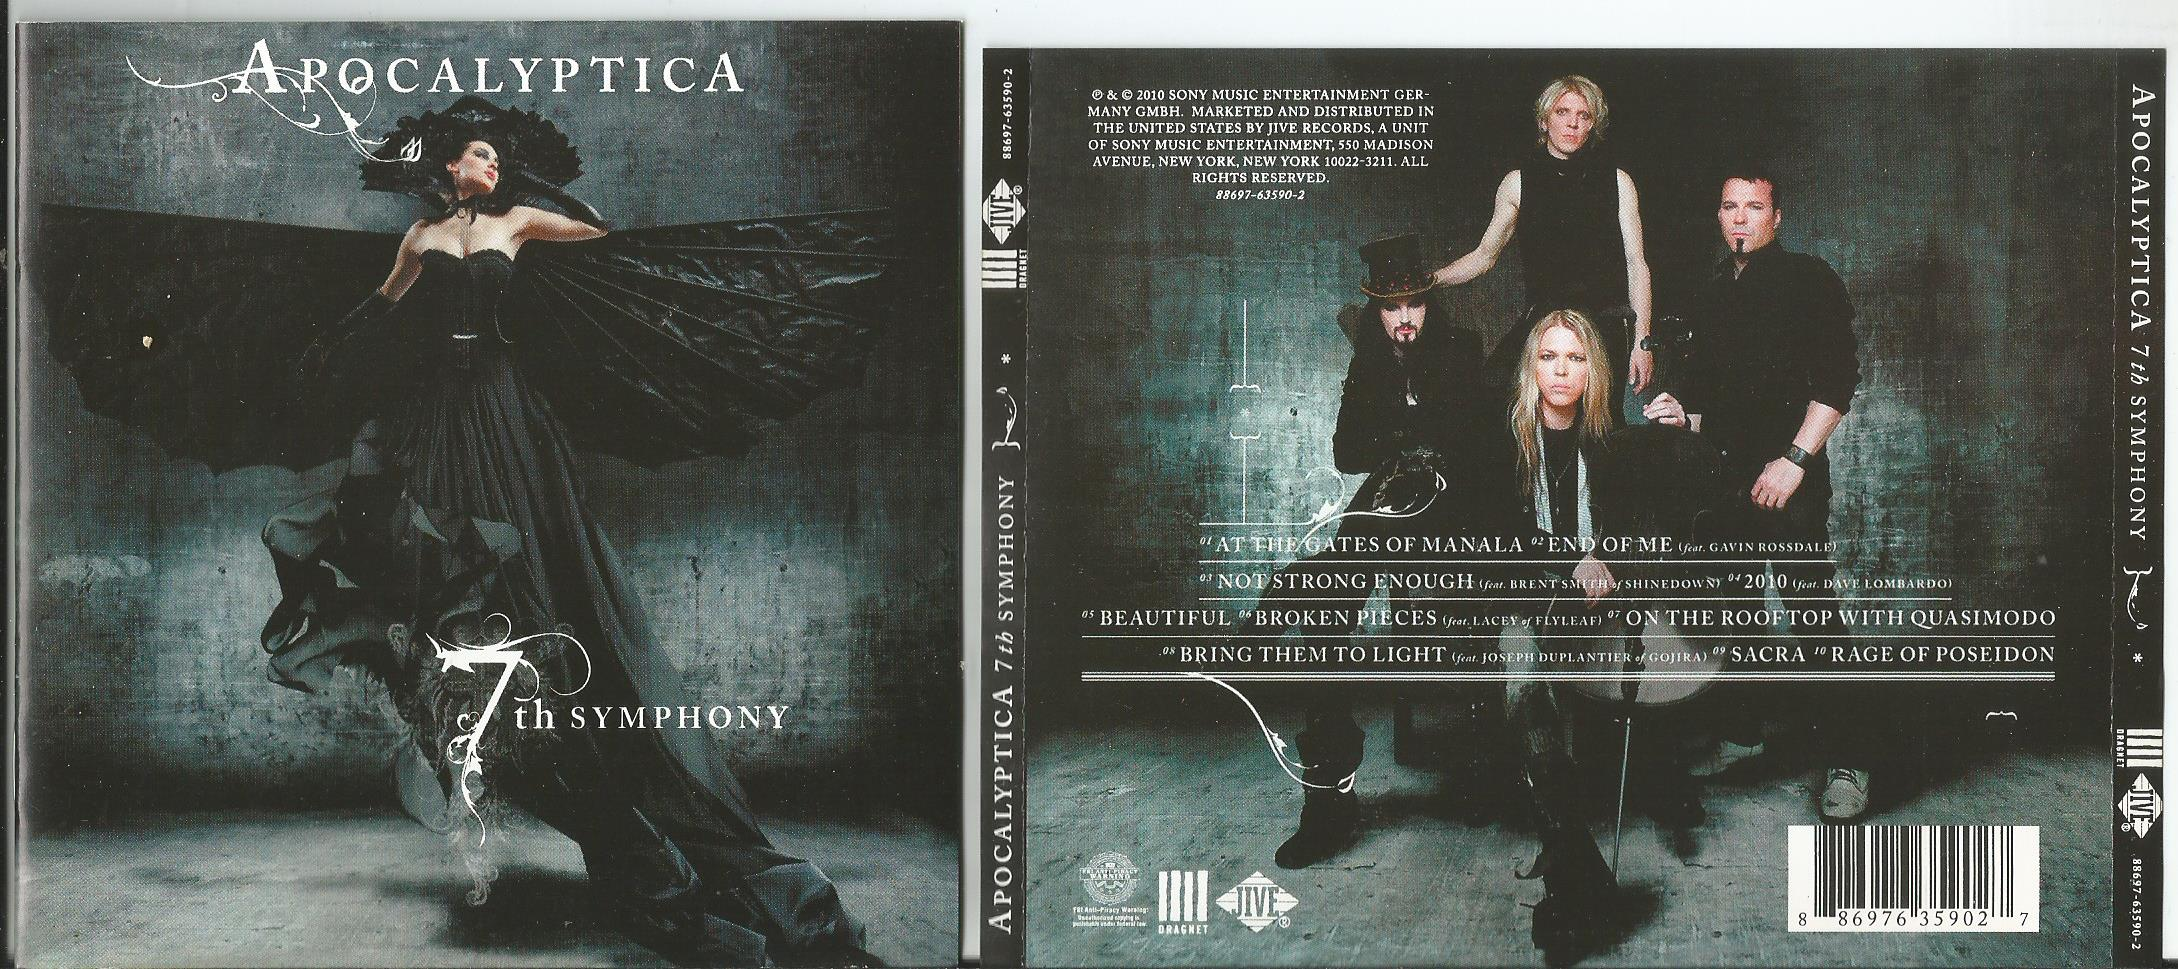 APOCALYPTICA 7th Symphony (16page booklet with lyrics)